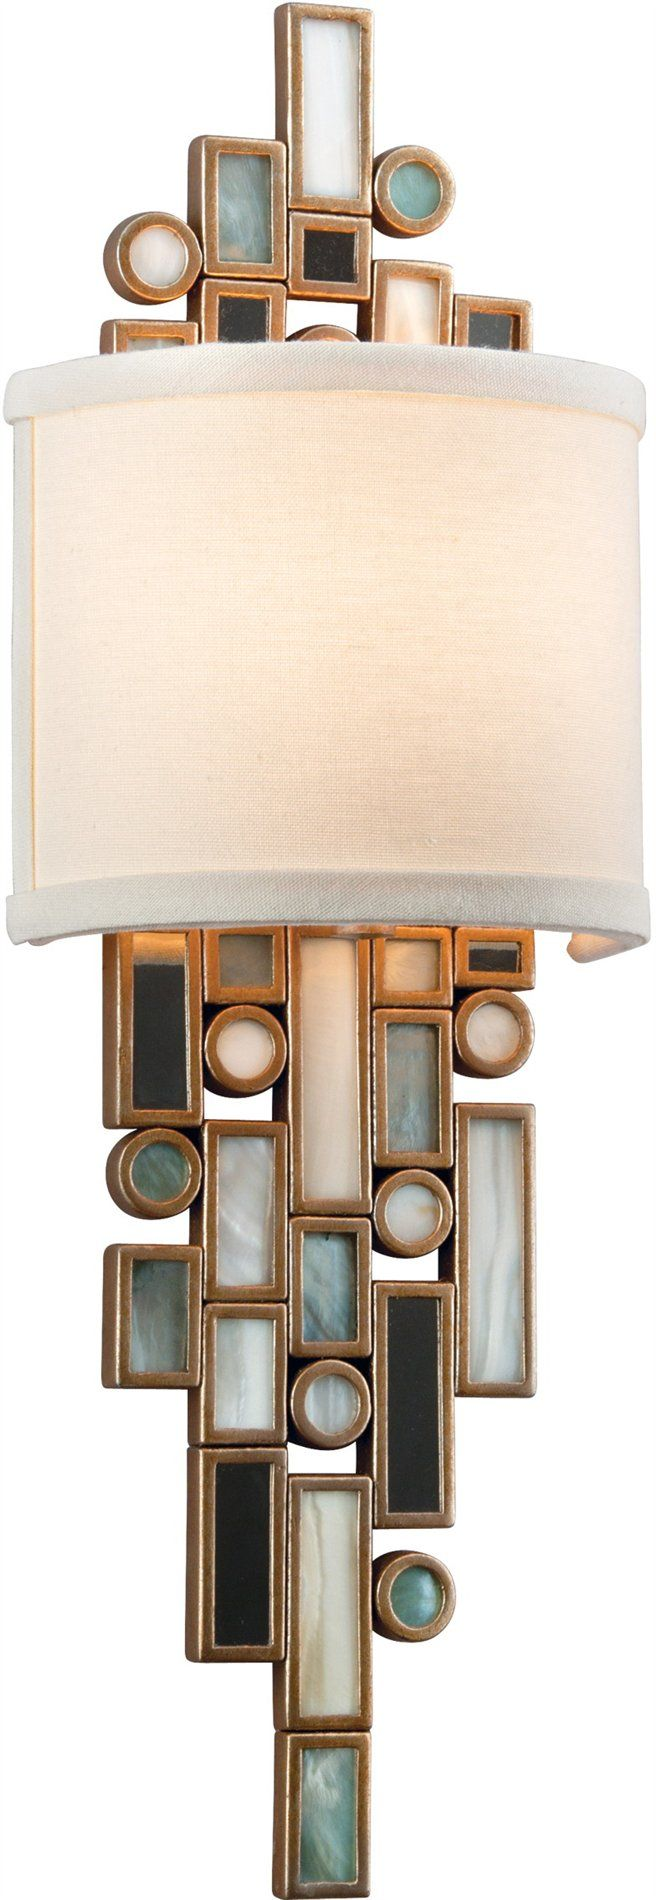 South Shore Decorating: Corbett Lighting 150-11 Dolcetti Transitional Wall Sconce CB-150-11